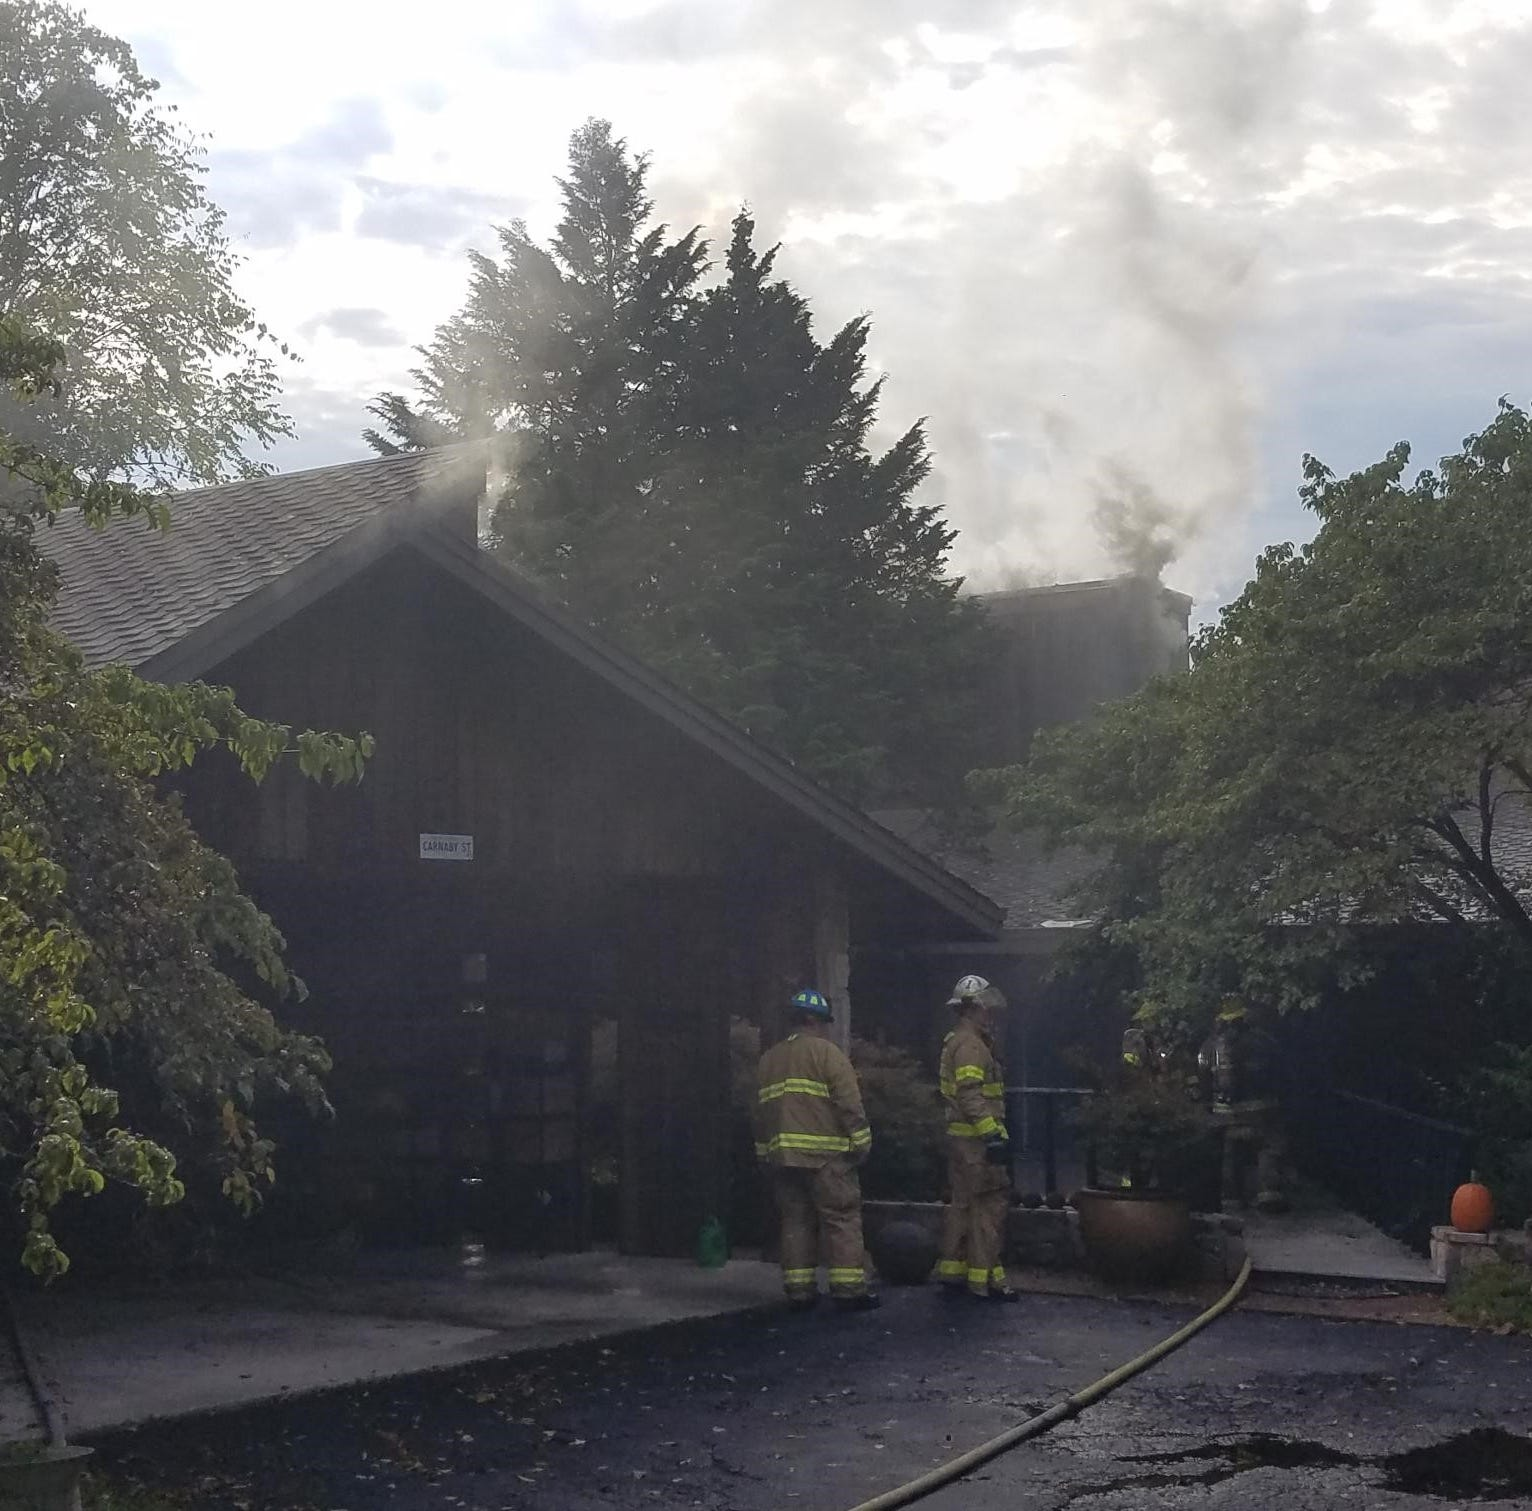 Rural/Metro: Fire guts Farragut home, lightning may be to blame